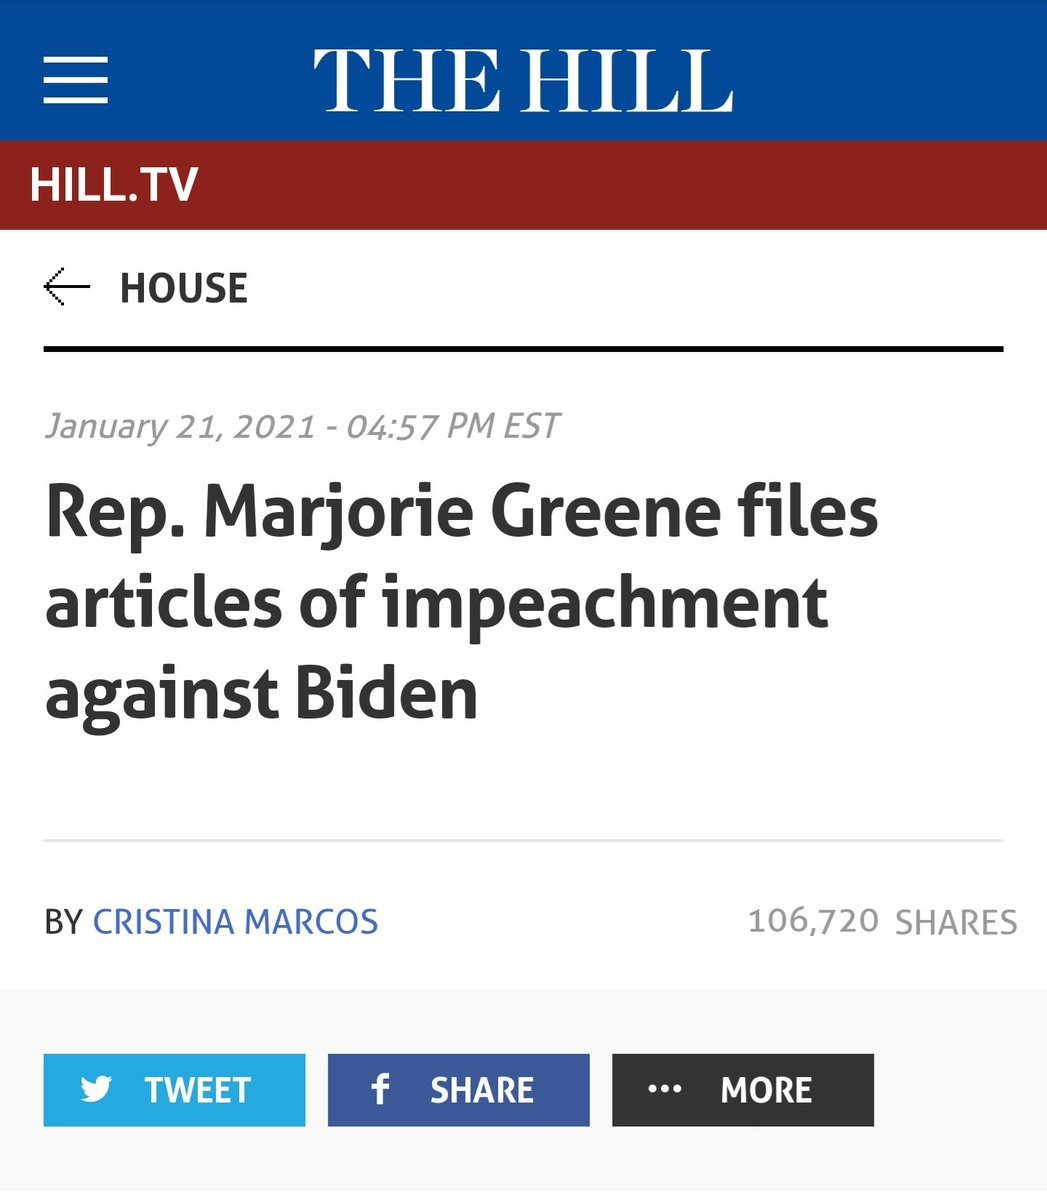 Holy Shit! Someone took this hashtag seriously #ImpeachBidenNow